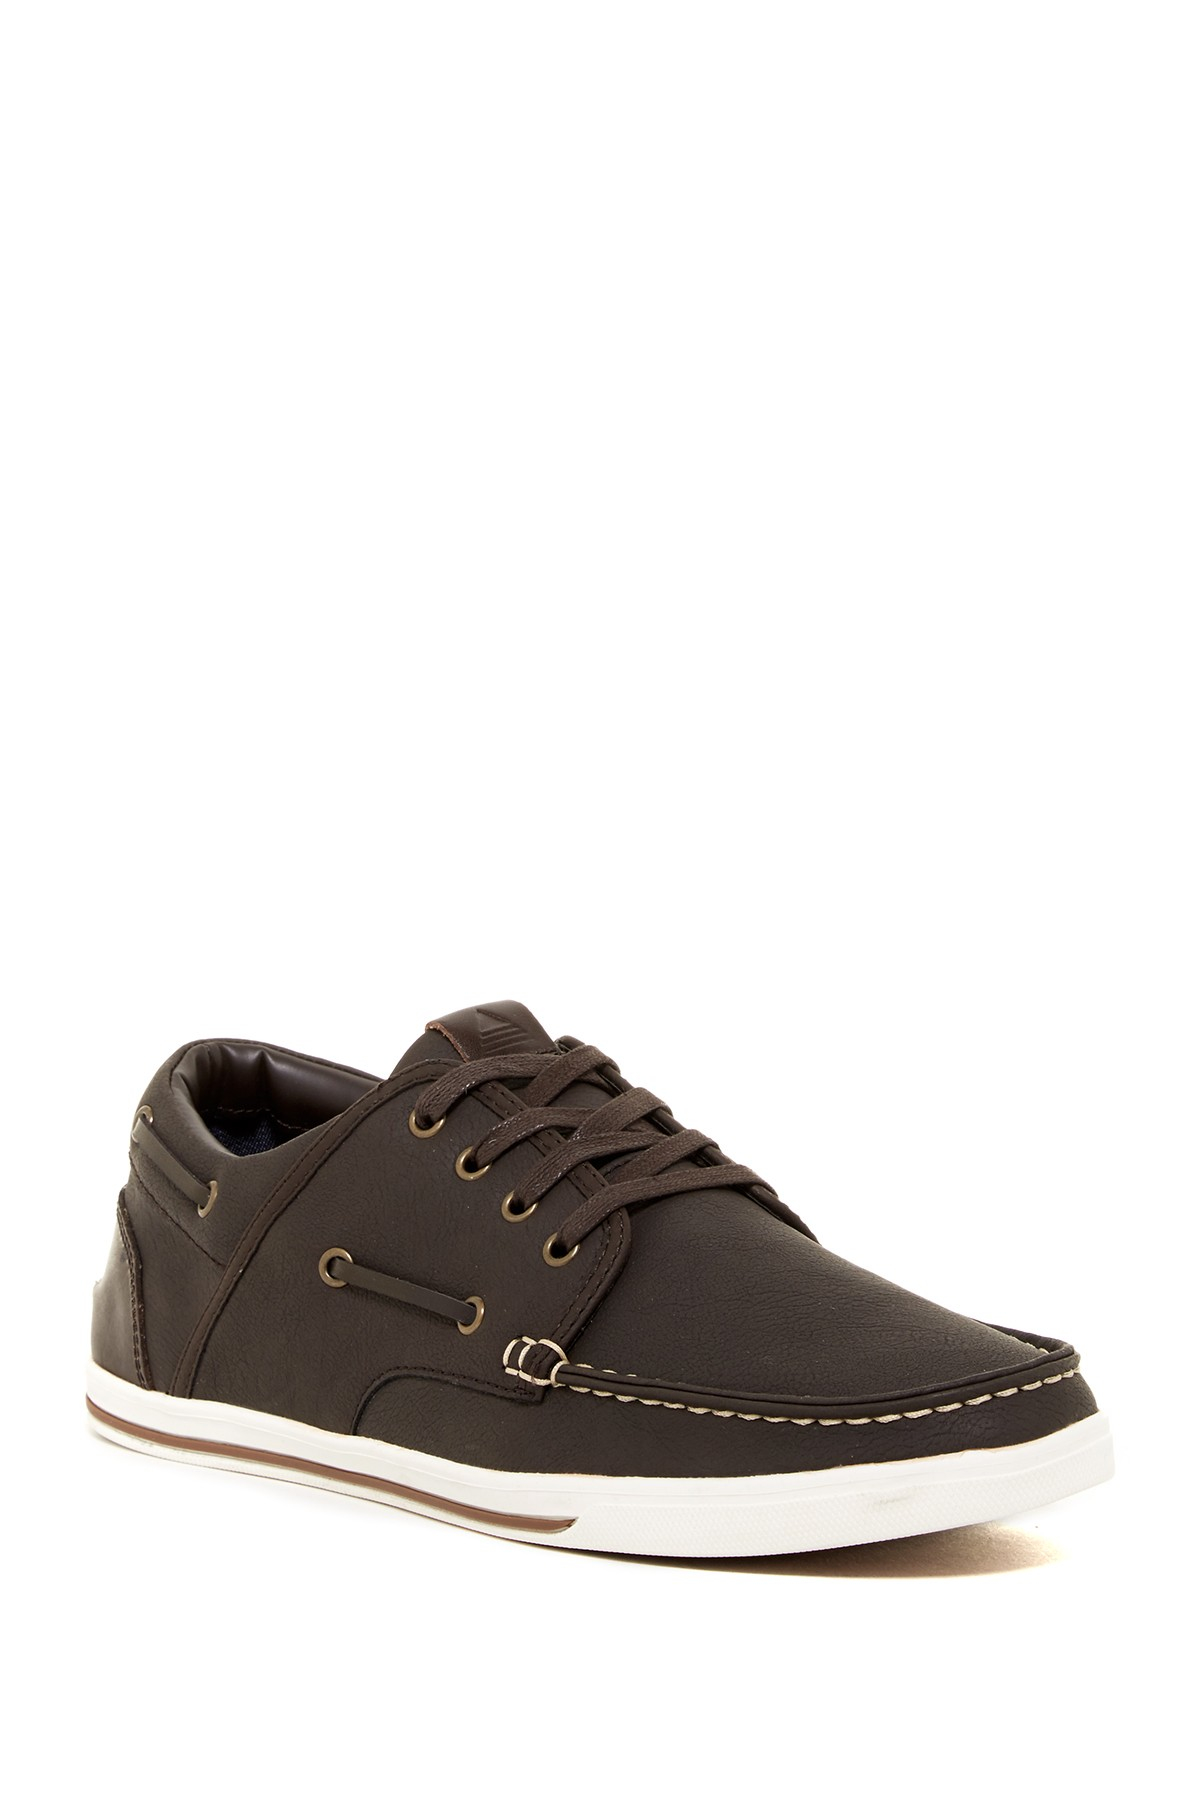 Nordstrom Deck Shoes For Men